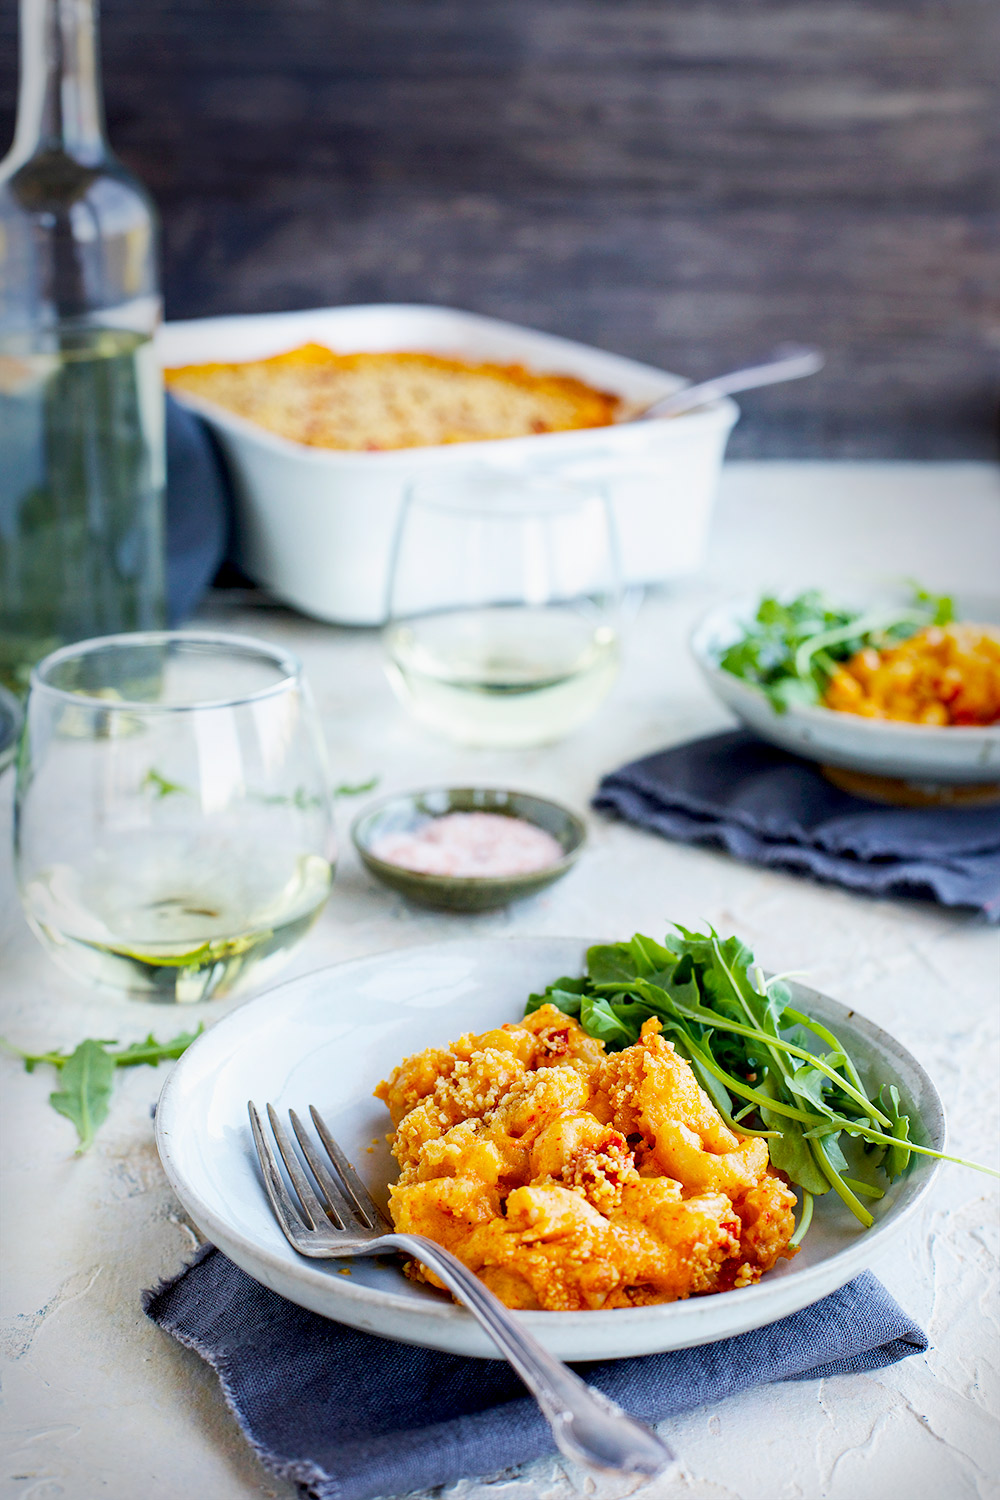 Manchego Piquillo Pepper Mac 'n' Cheese topped with Marcona Almonds